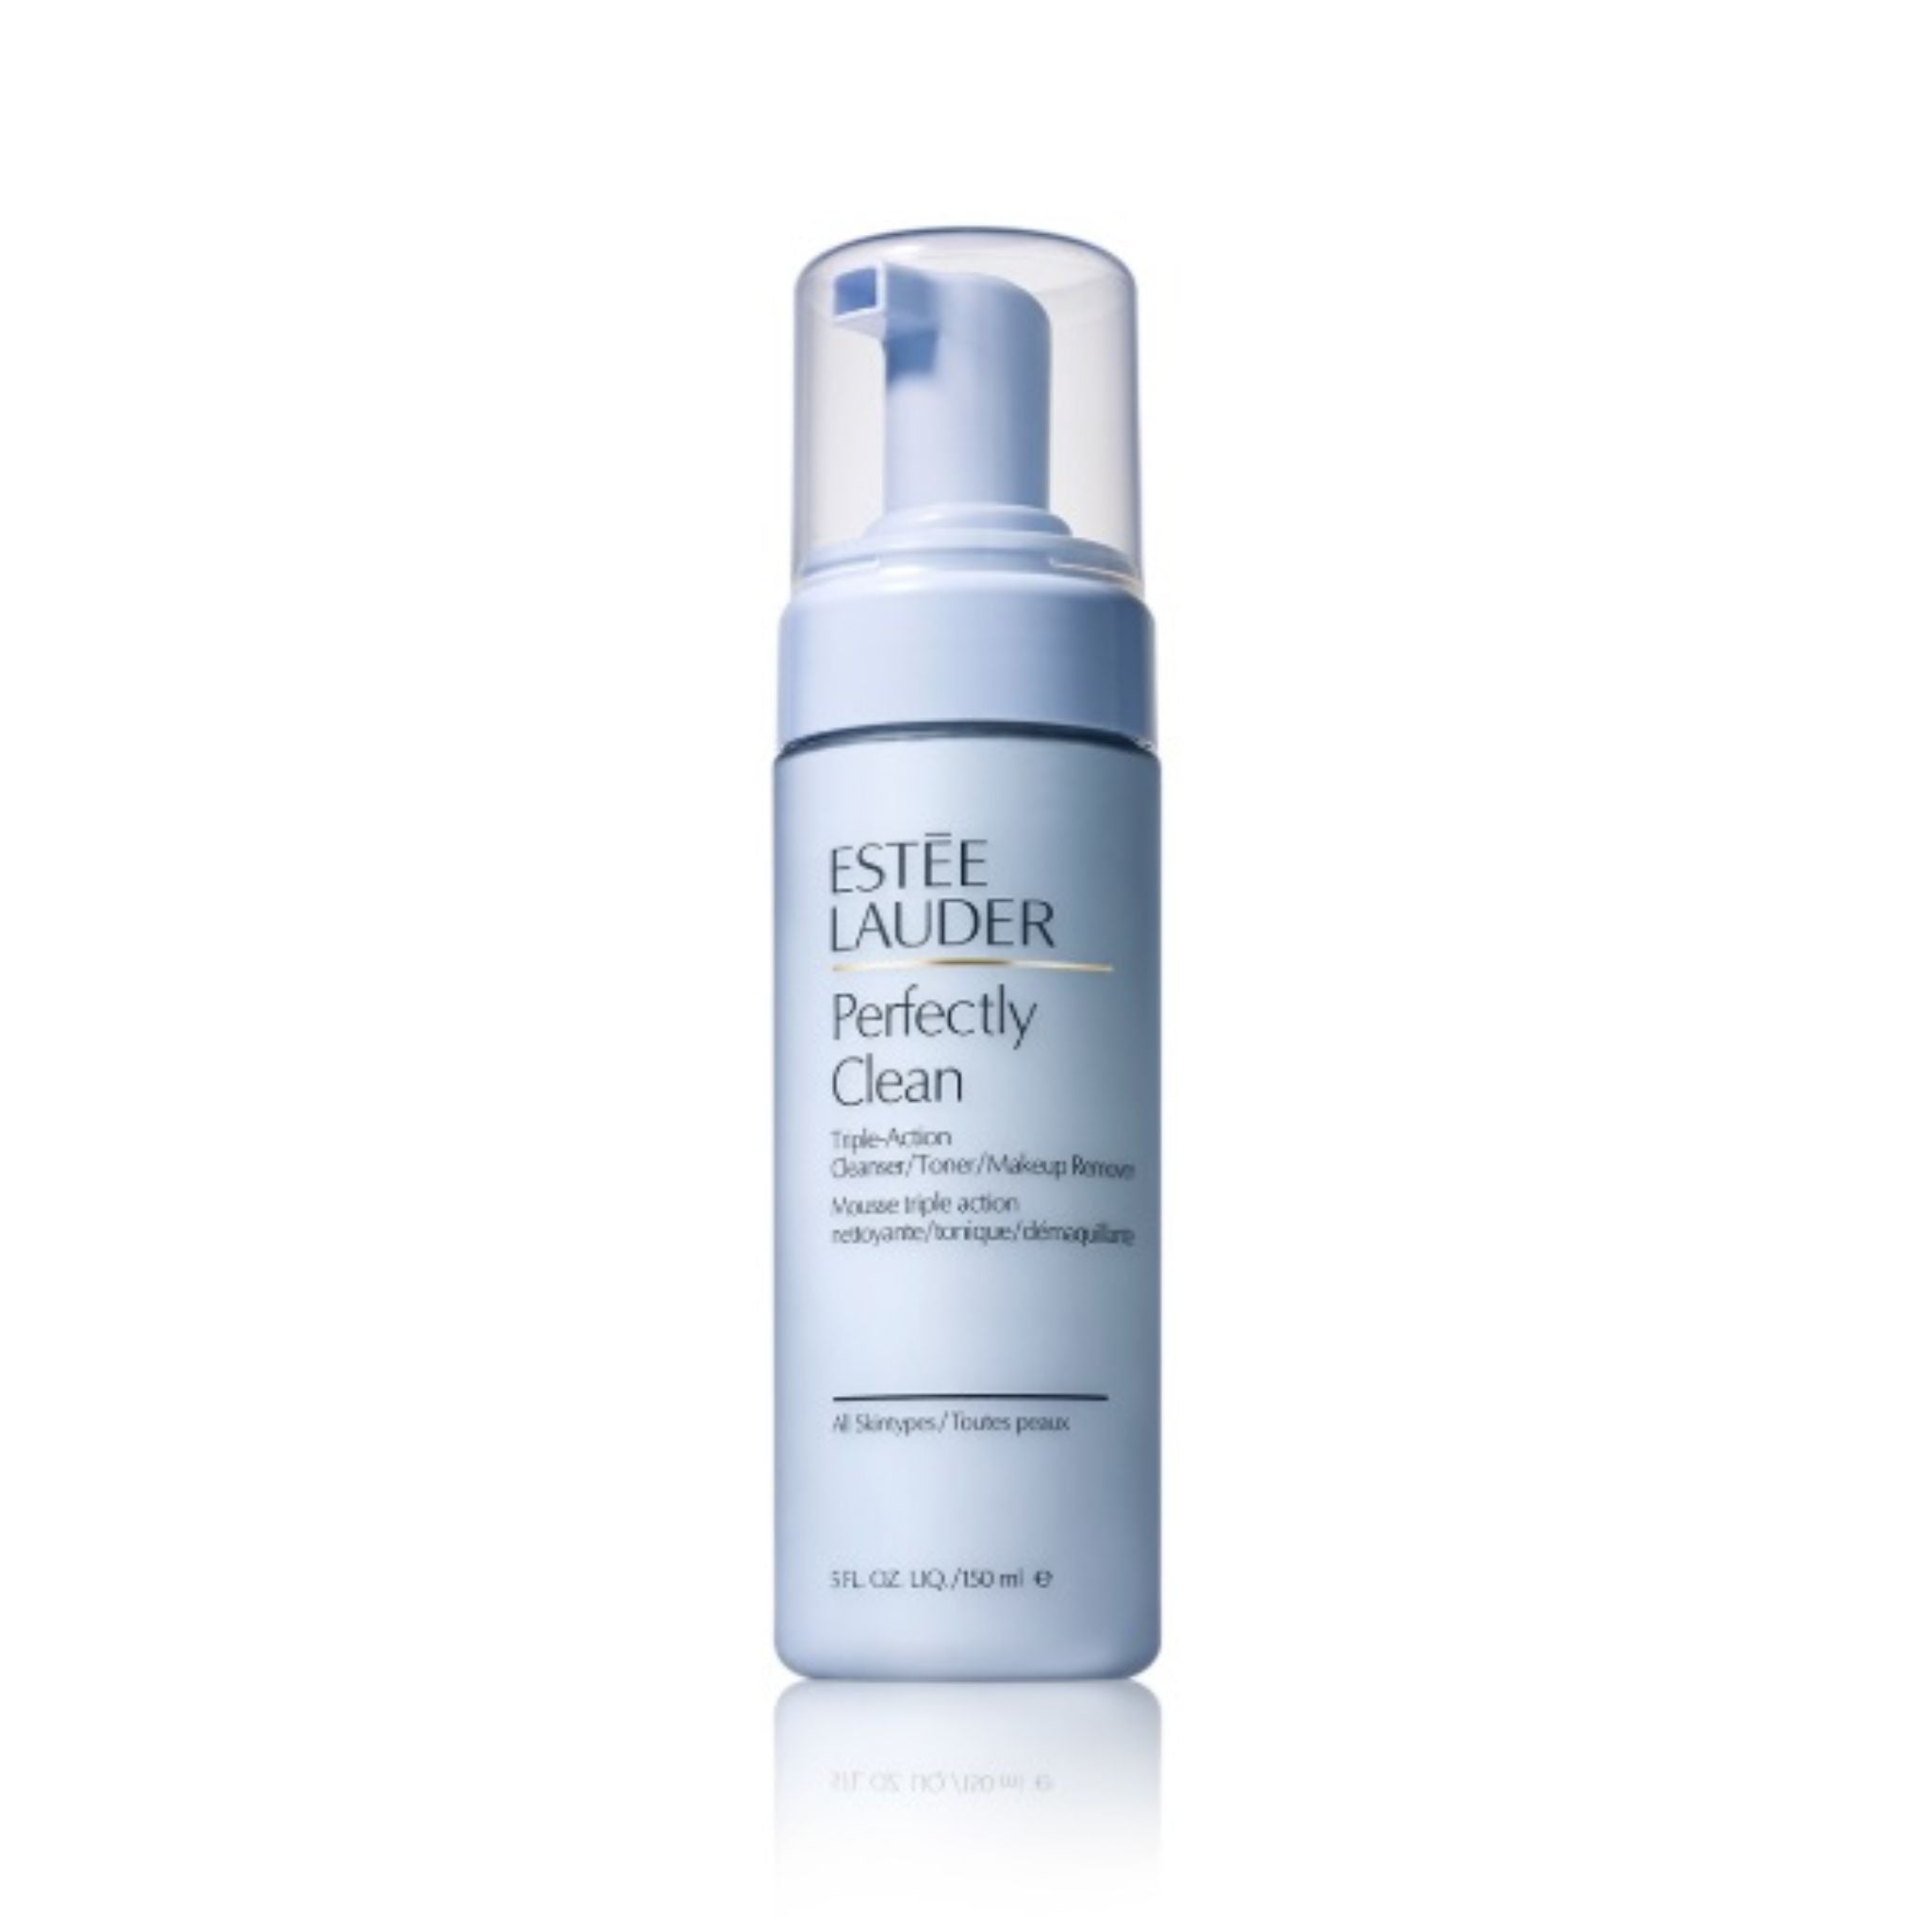 Estée Lauder Estee Laude Perfectly Clean Dual Phase All-in-One Cleanser/Makeup Remover/Toner 150ml